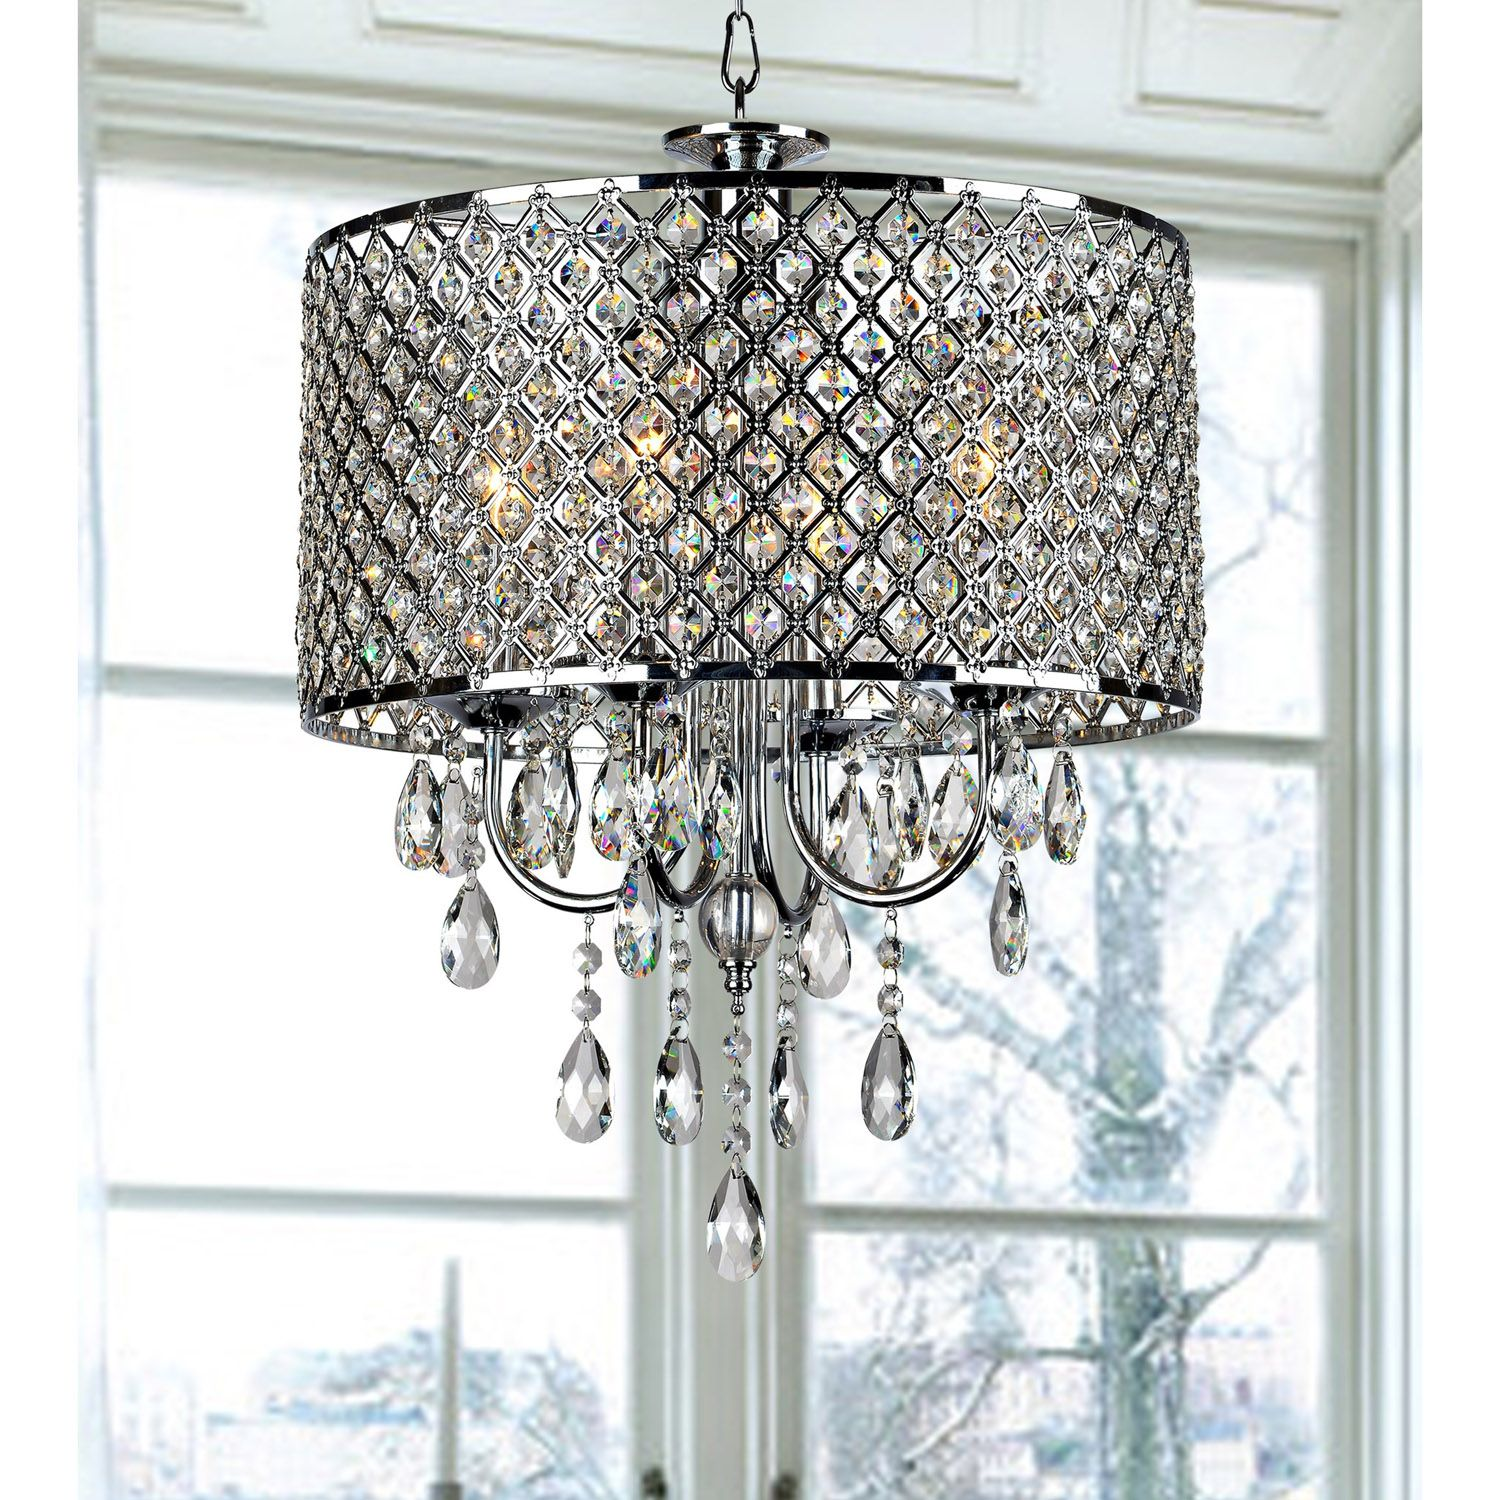 Buy Drum Chandelier Crystal Modern 4 Lights Pendant Lamp Lighting